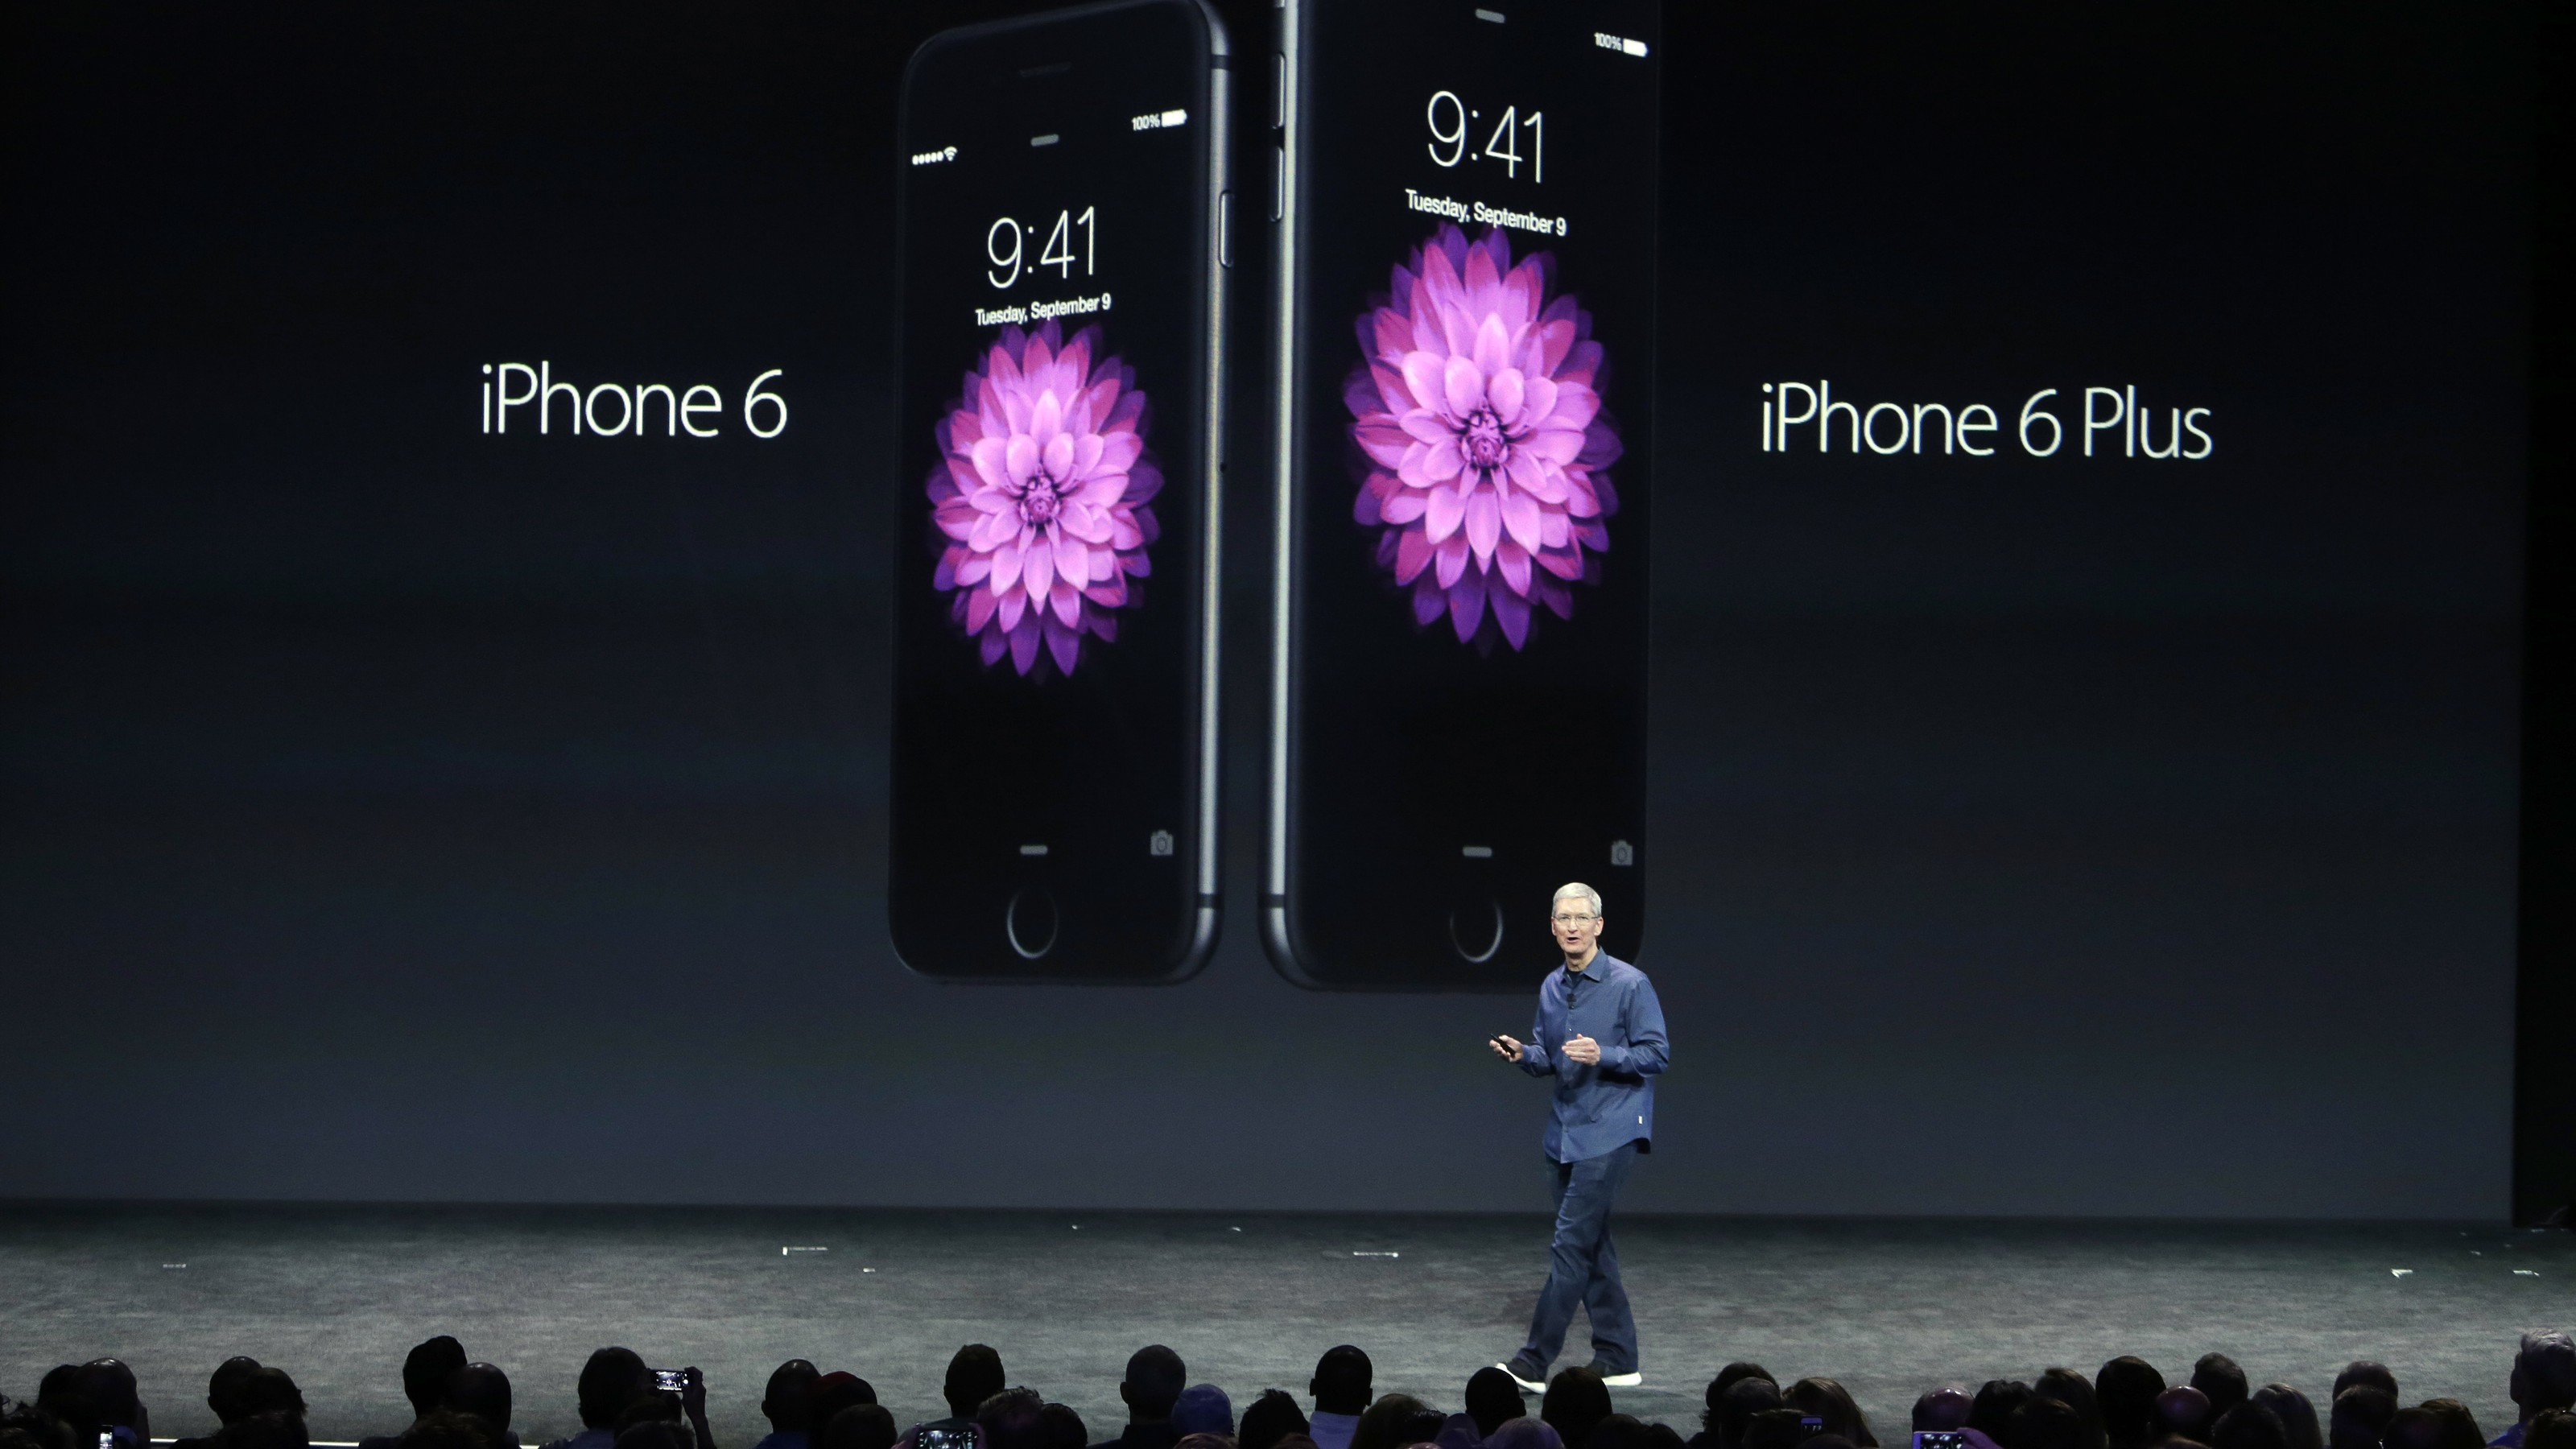 Apple CEO Tim Cook with the iPhone 6 and iPhone 6 Plus